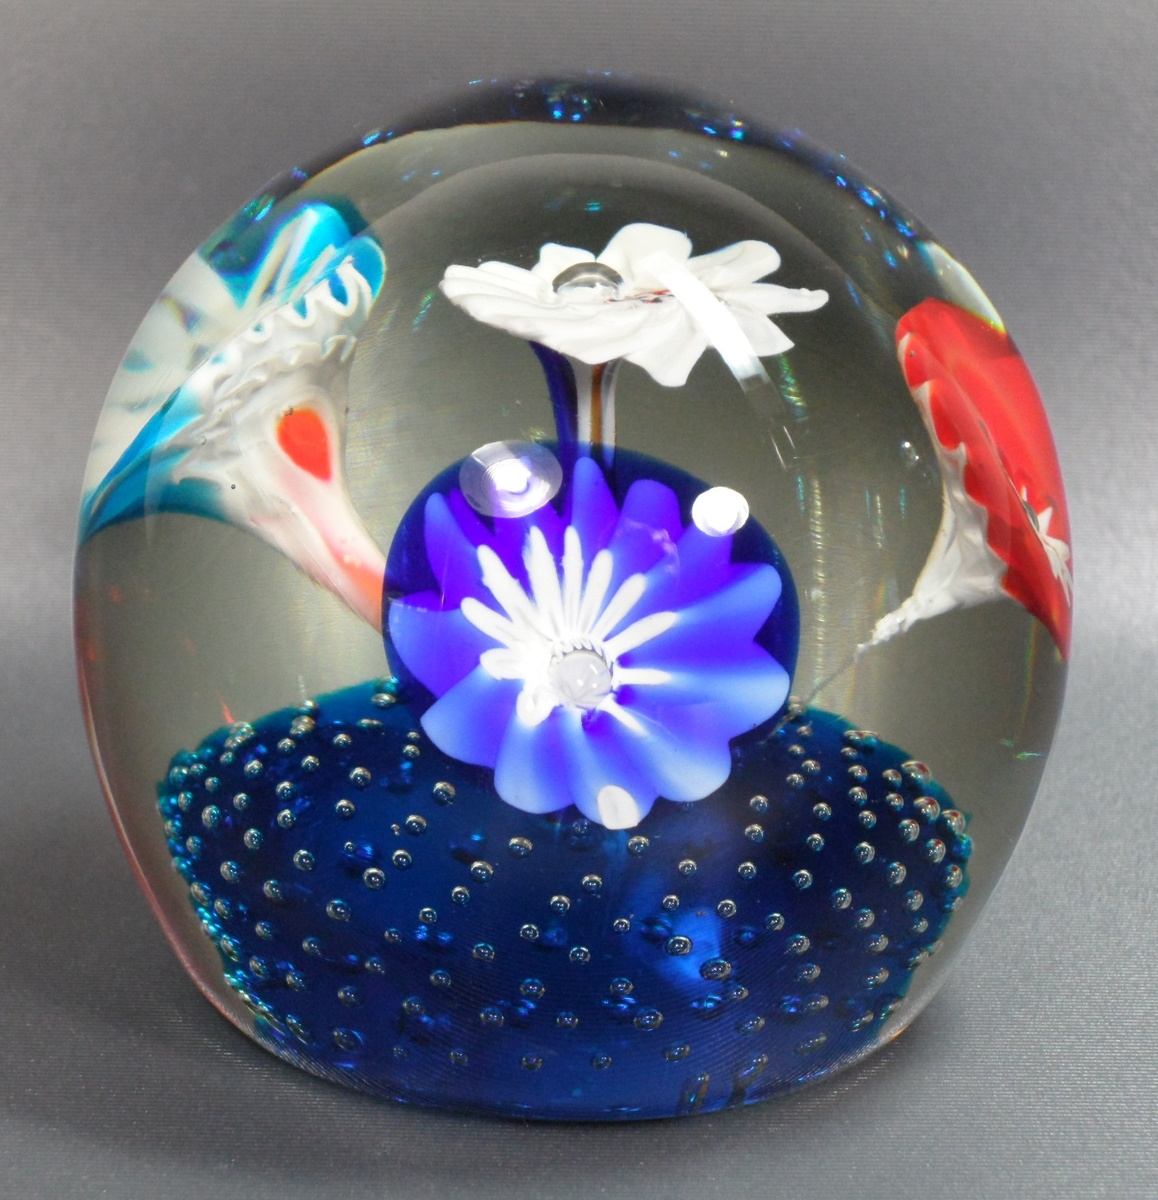 Fratelli toso trumpet flower paperweight collectors weekly mightylinksfo